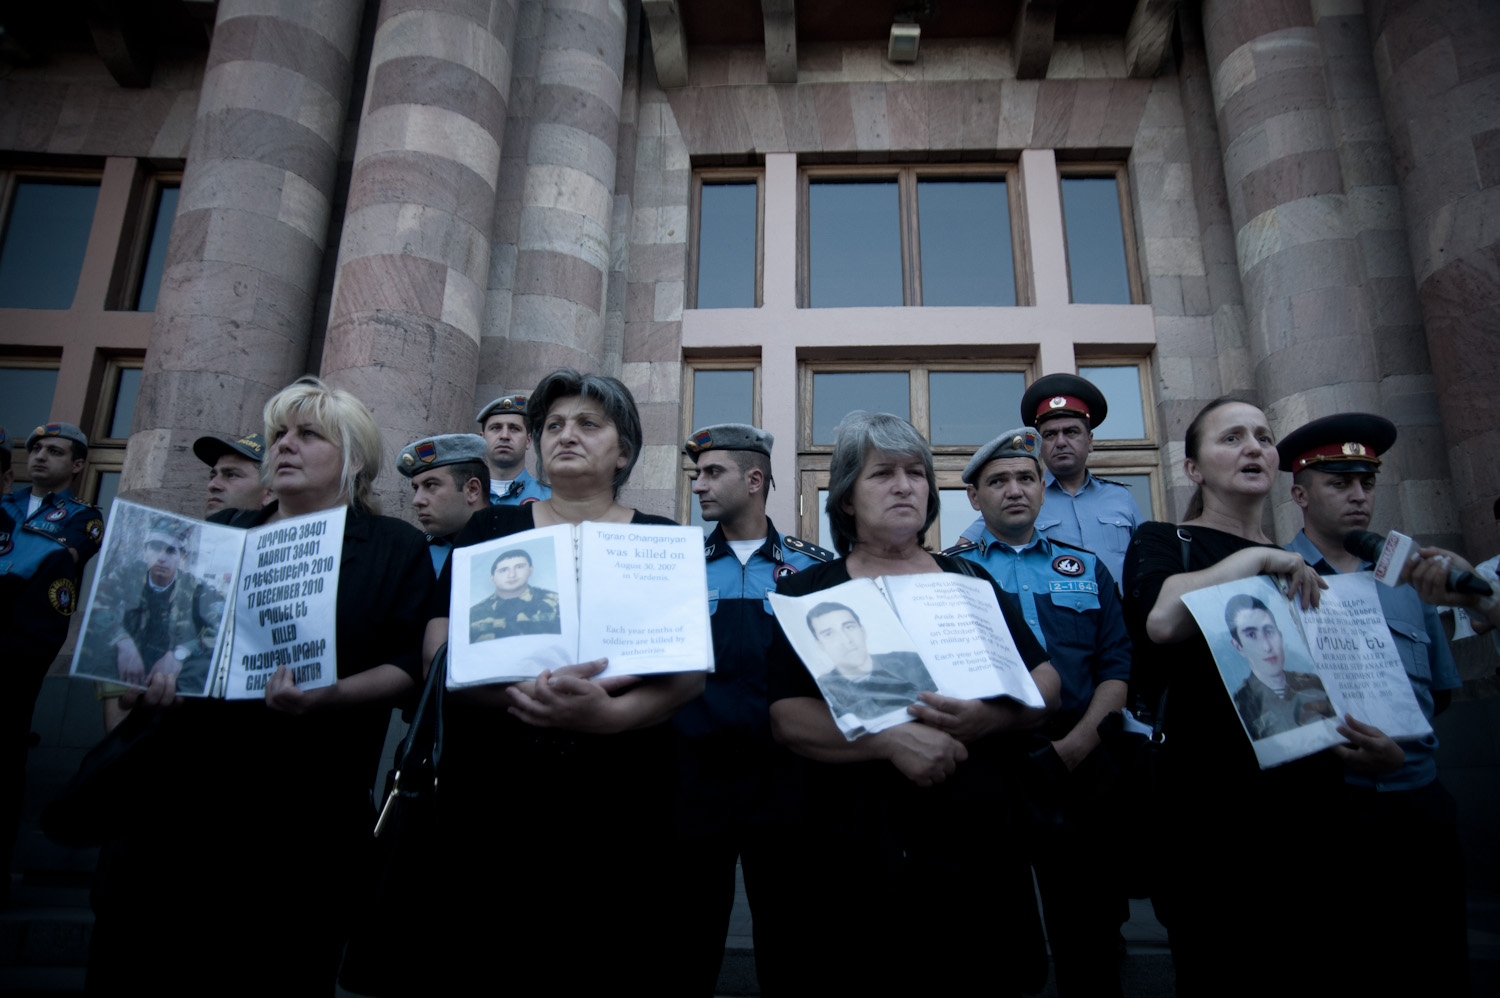 A group of soldiers' mothers stand in front of the government building at Yerevan's Republic Square every Thursday morning at 11am holding their sons' photographs and demanding that their cases be handled justly.